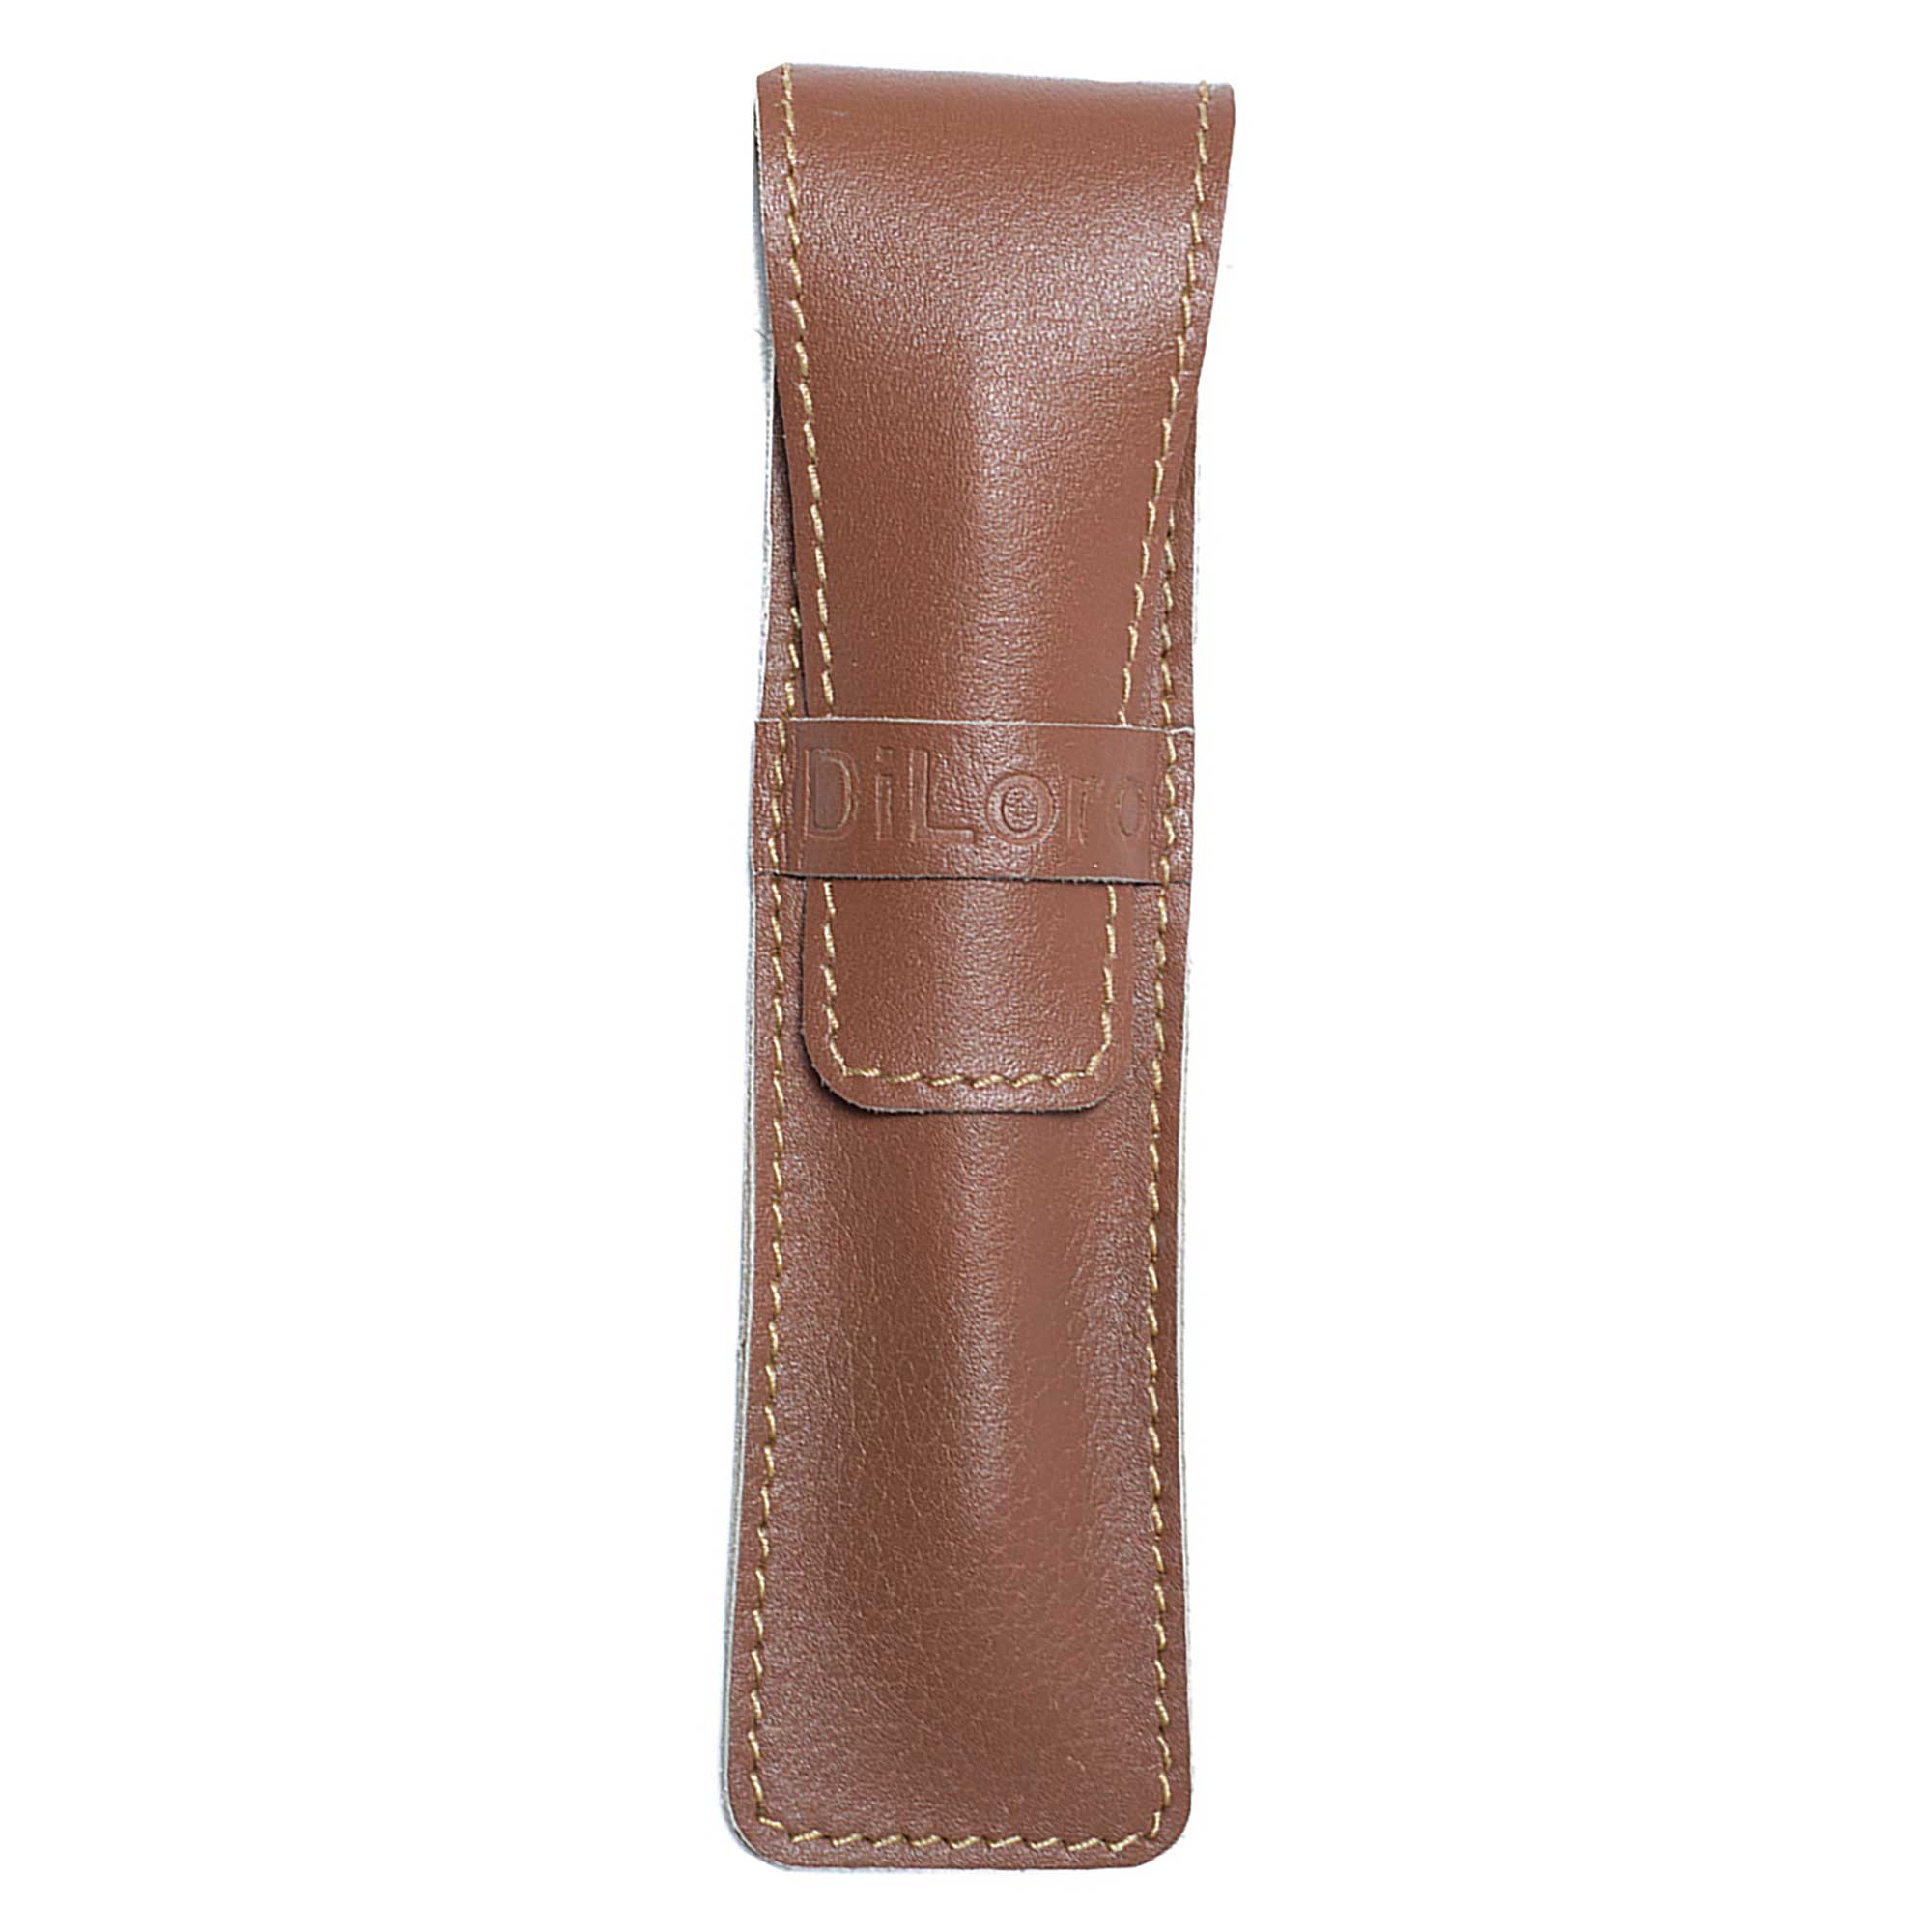 DiLoro Single Leather Pen Holder in Sepia Tan Full Grain Leather